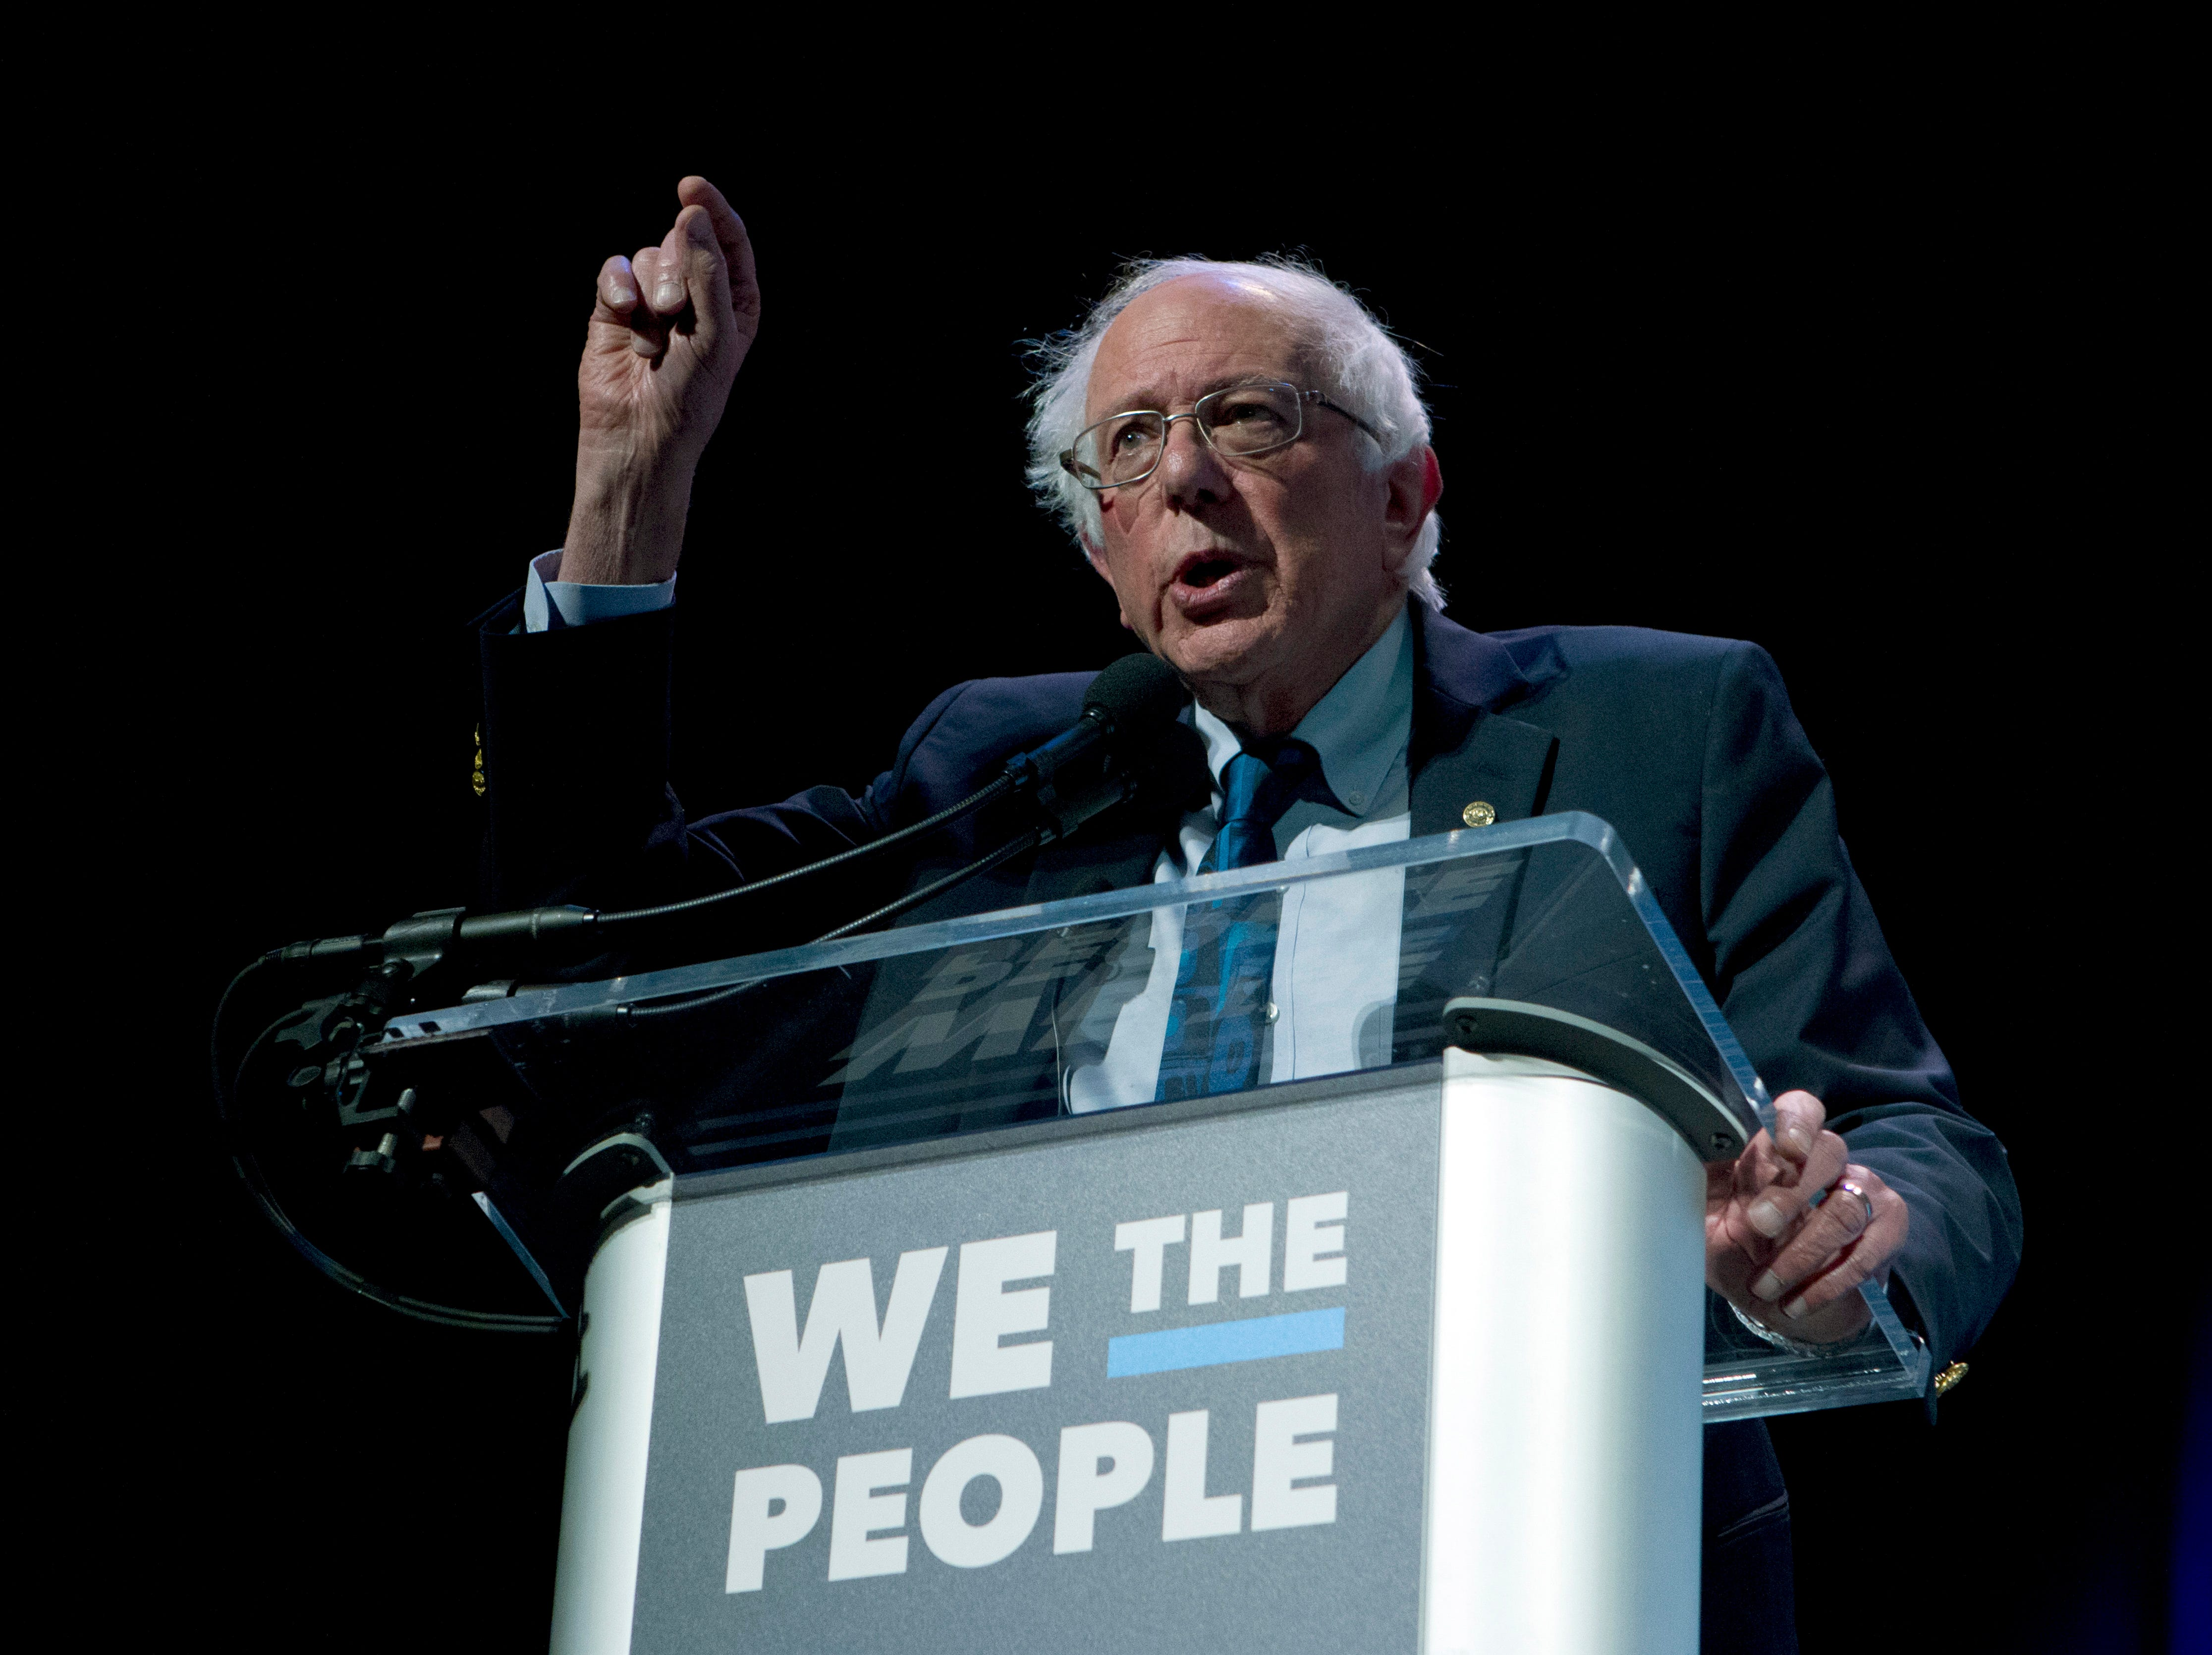 Bernie Sanders is adjusting to a new campaign role: Front-runner